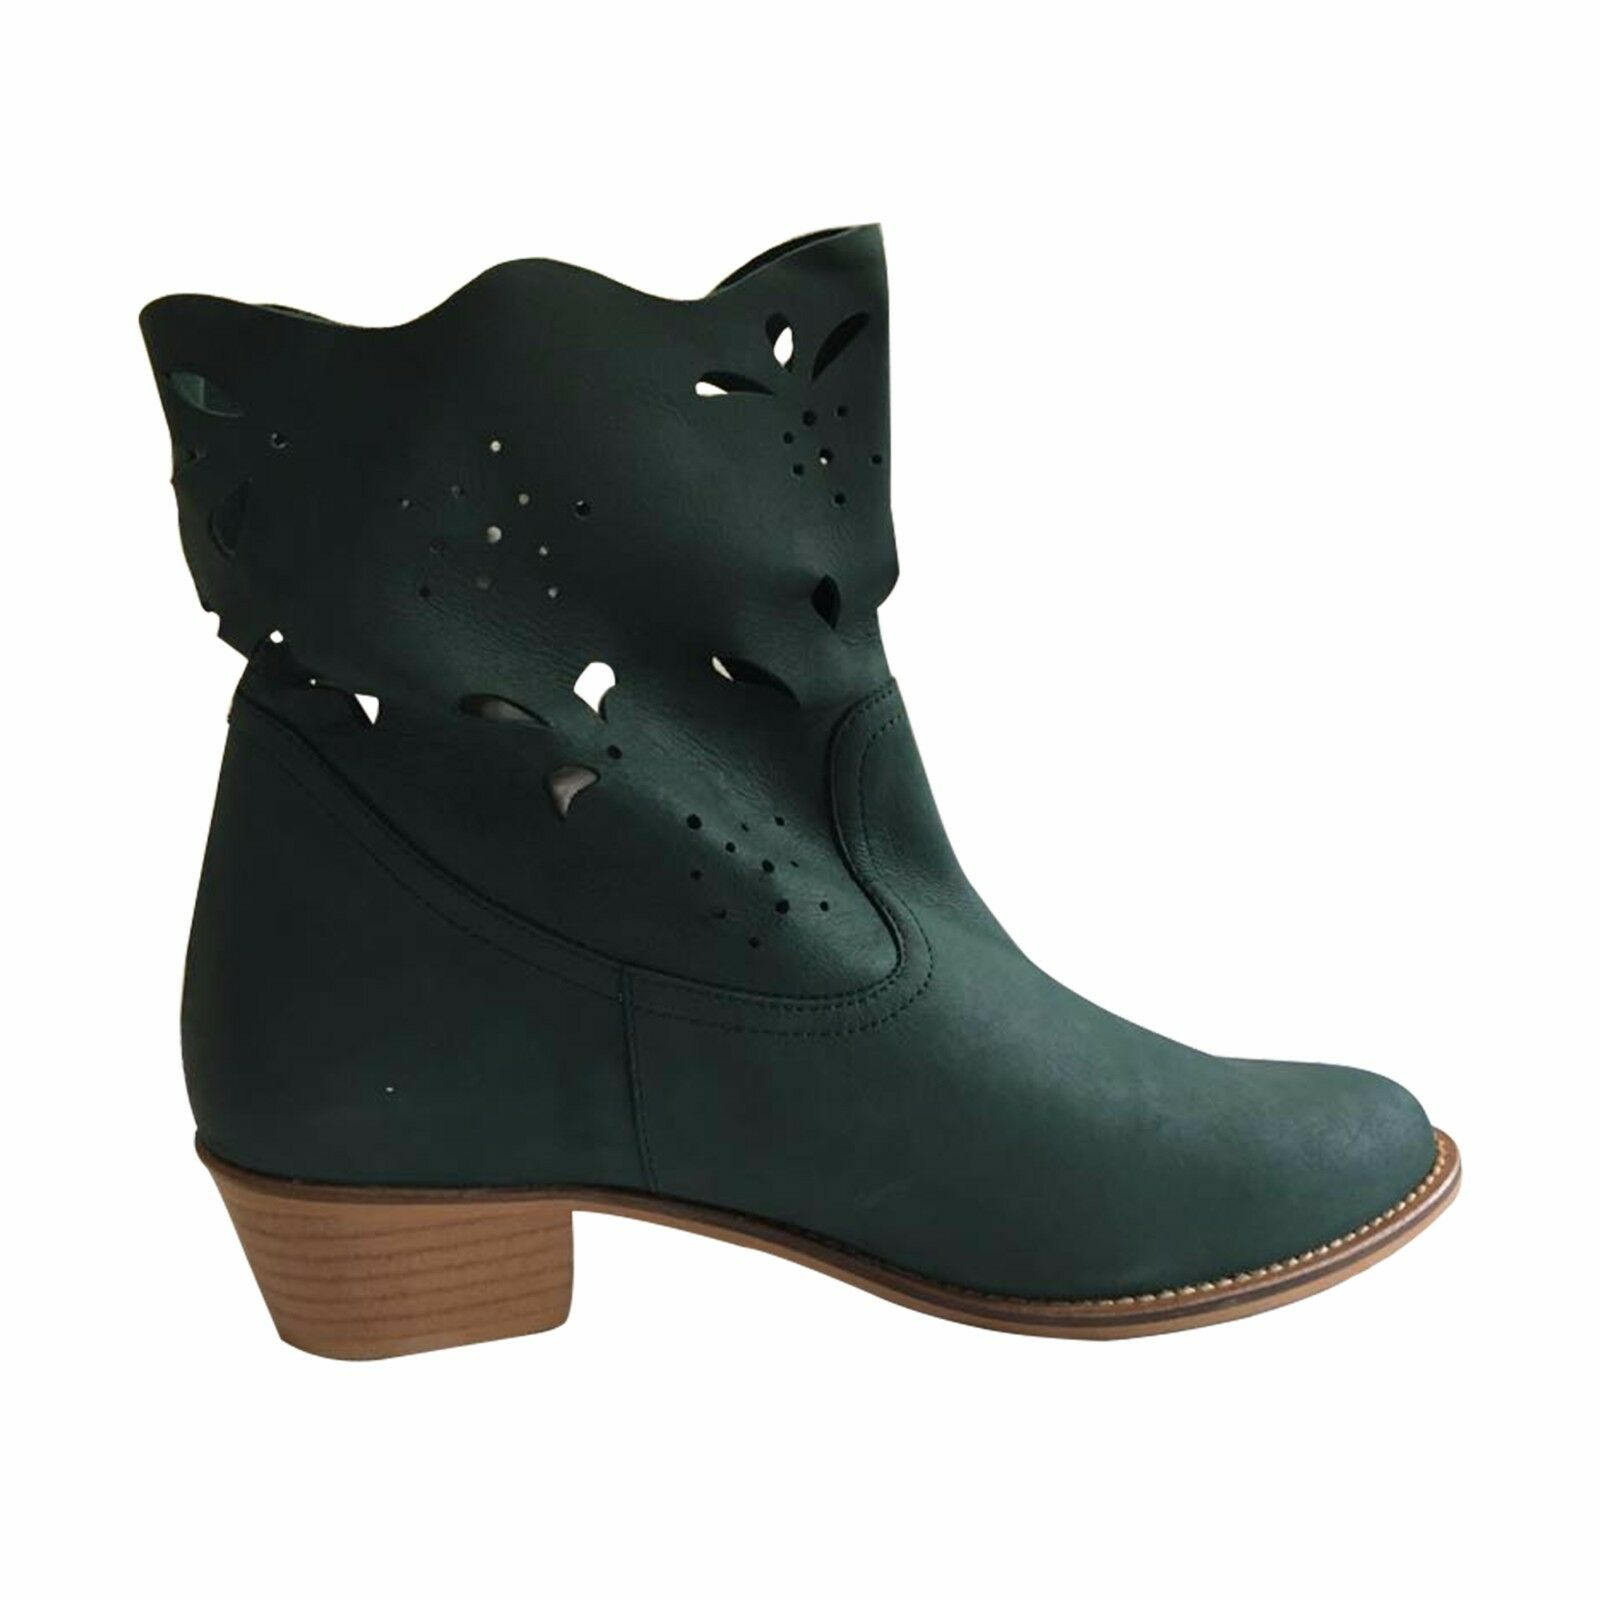 Size 43 Women's Green Leather Laser Cut Cowboy Boots MADE IN SPAIN